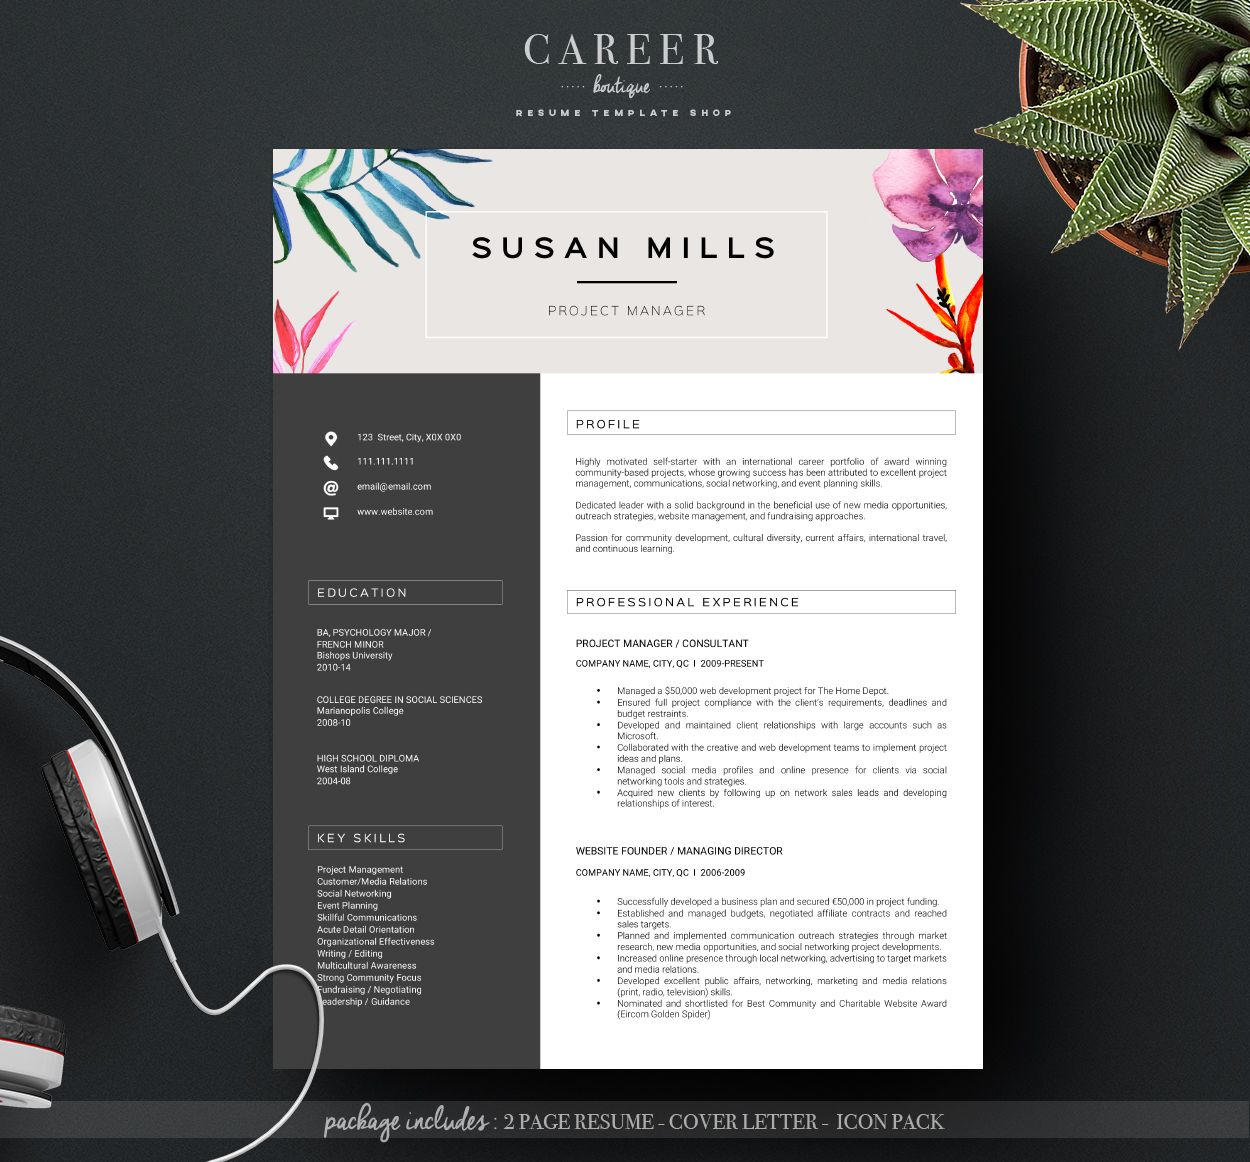 Creative Resume Template from @CareerBoutique https://www.etsy.com ...